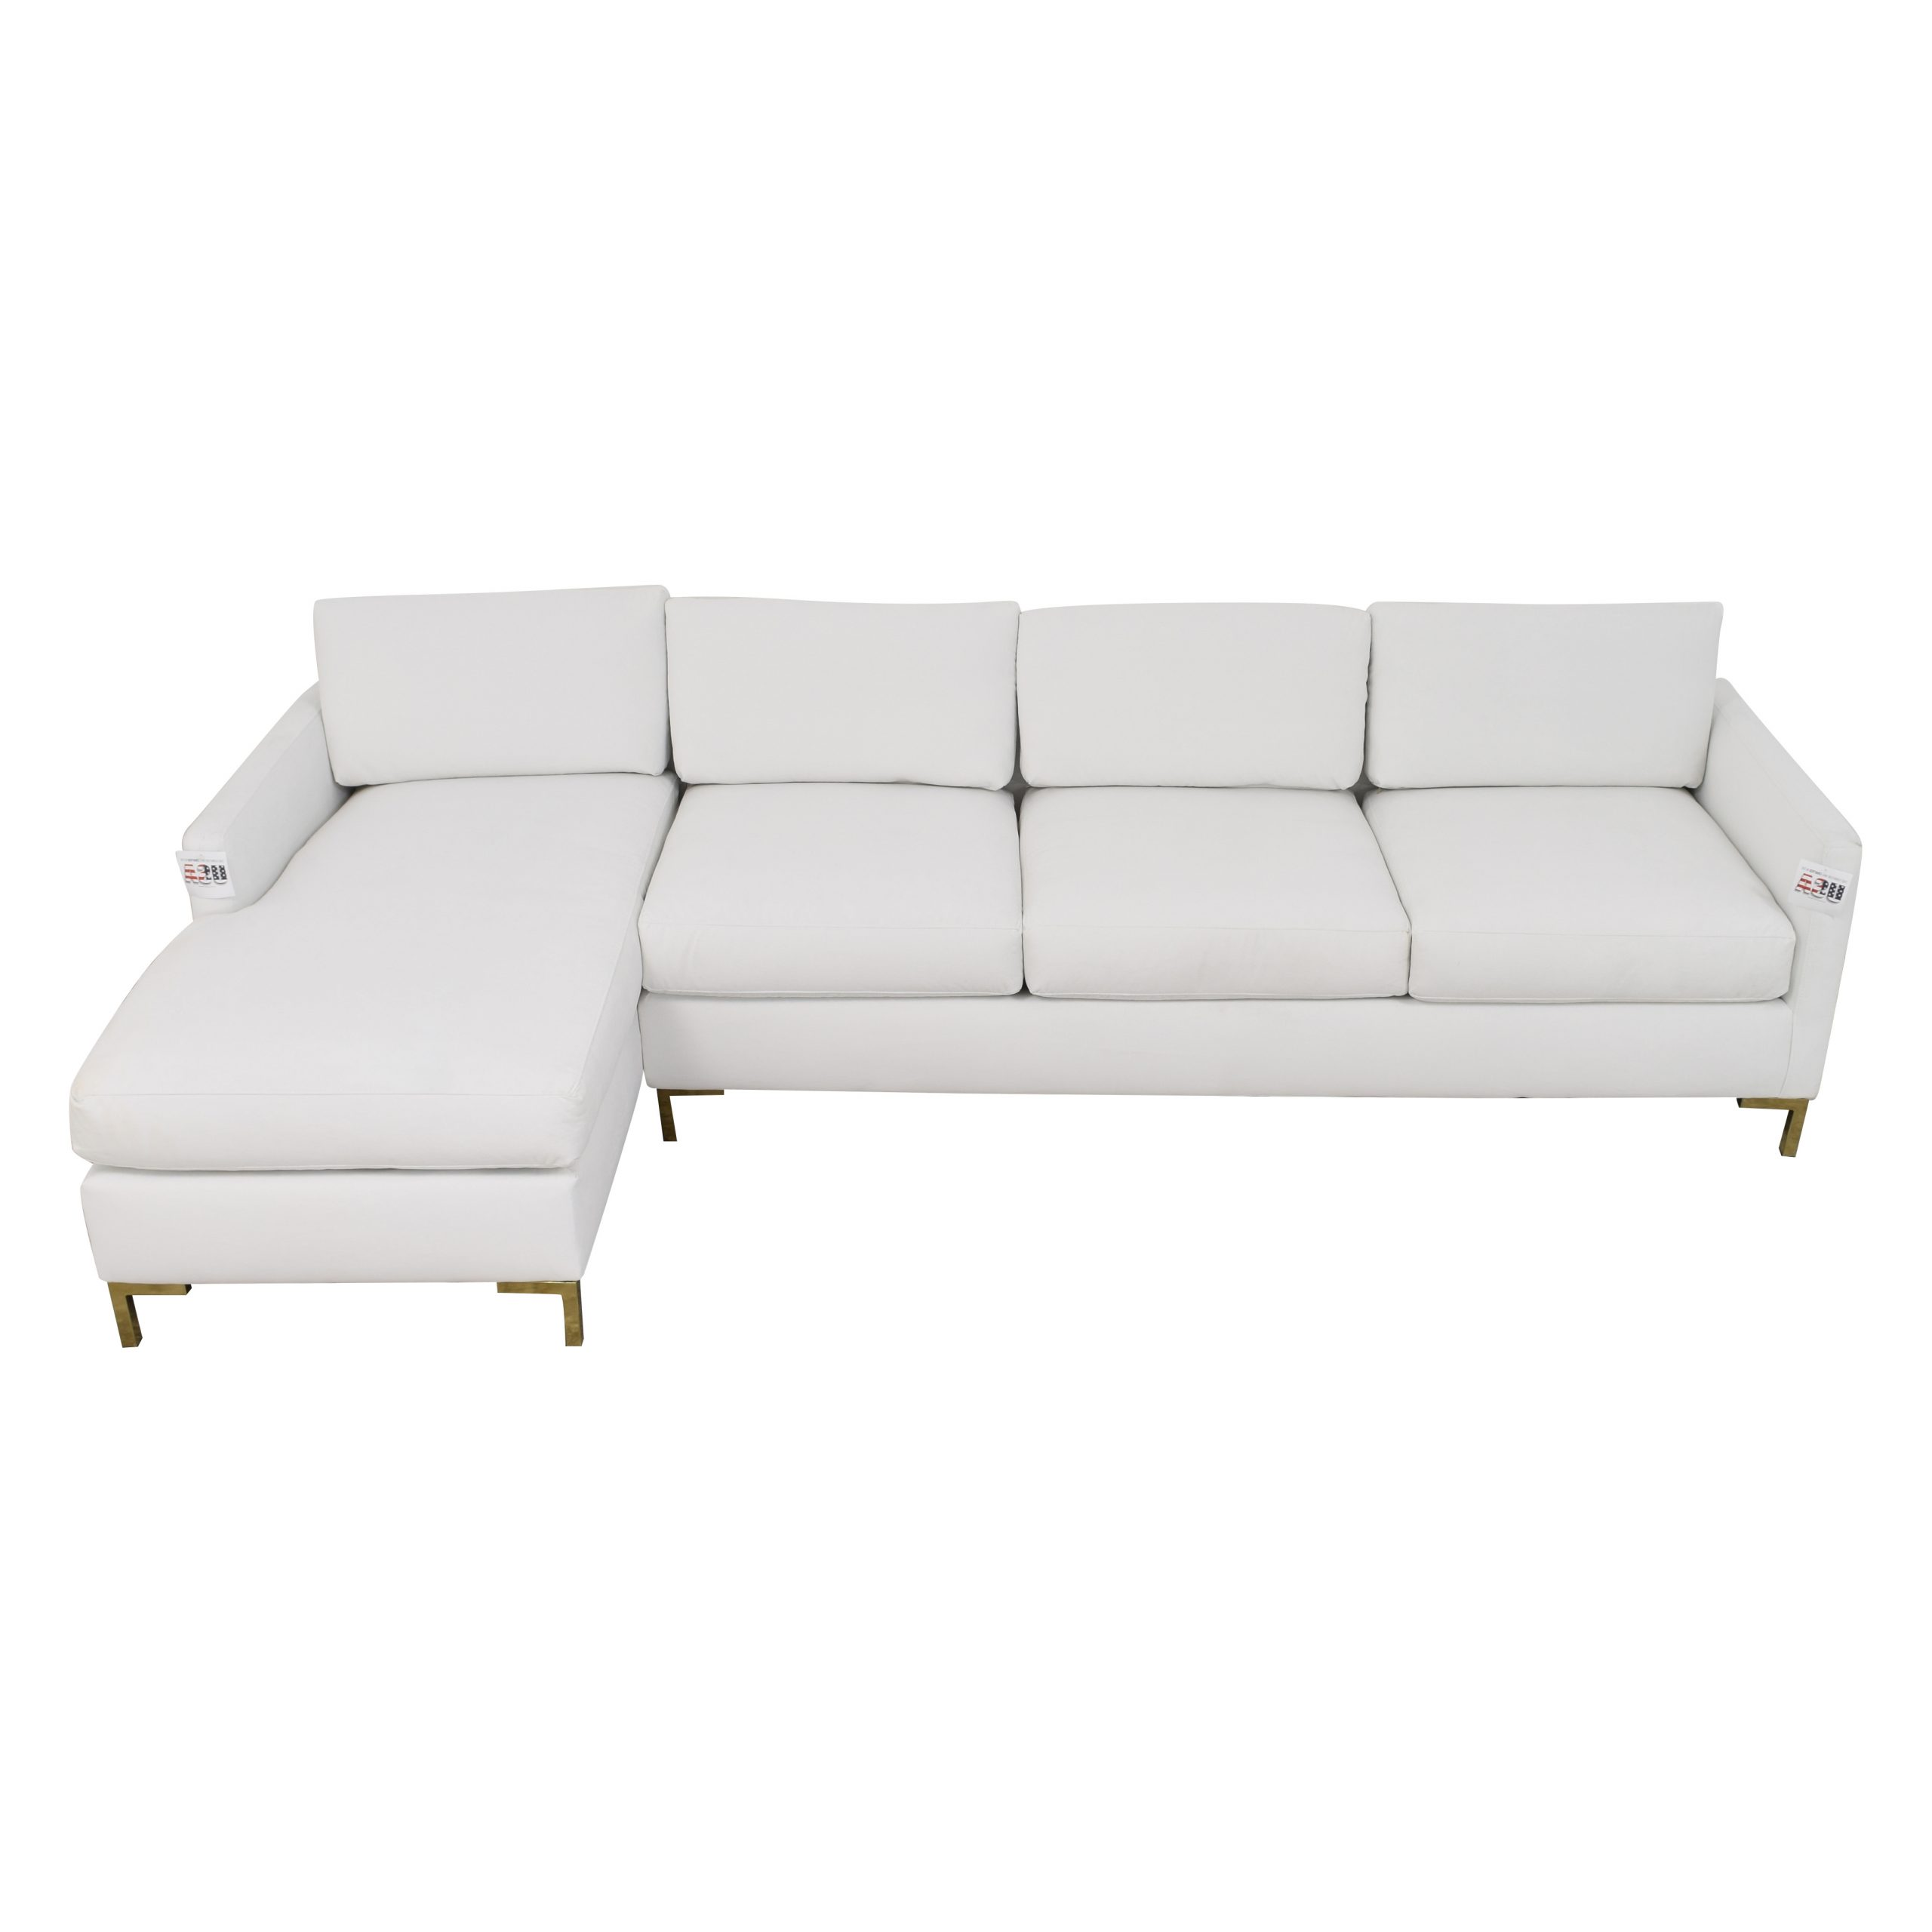 [%37% Off – The Inside The Inside Modern Sectional Right Intended For Latest Monet Right Facing Sectional Sofas|Monet Right Facing Sectional Sofas Throughout Favorite 37% Off – The Inside The Inside Modern Sectional Right|Favorite Monet Right Facing Sectional Sofas With Regard To 37% Off – The Inside The Inside Modern Sectional Right|Well Liked 37% Off – The Inside The Inside Modern Sectional Right Throughout Monet Right Facing Sectional Sofas%] (View 21 of 25)